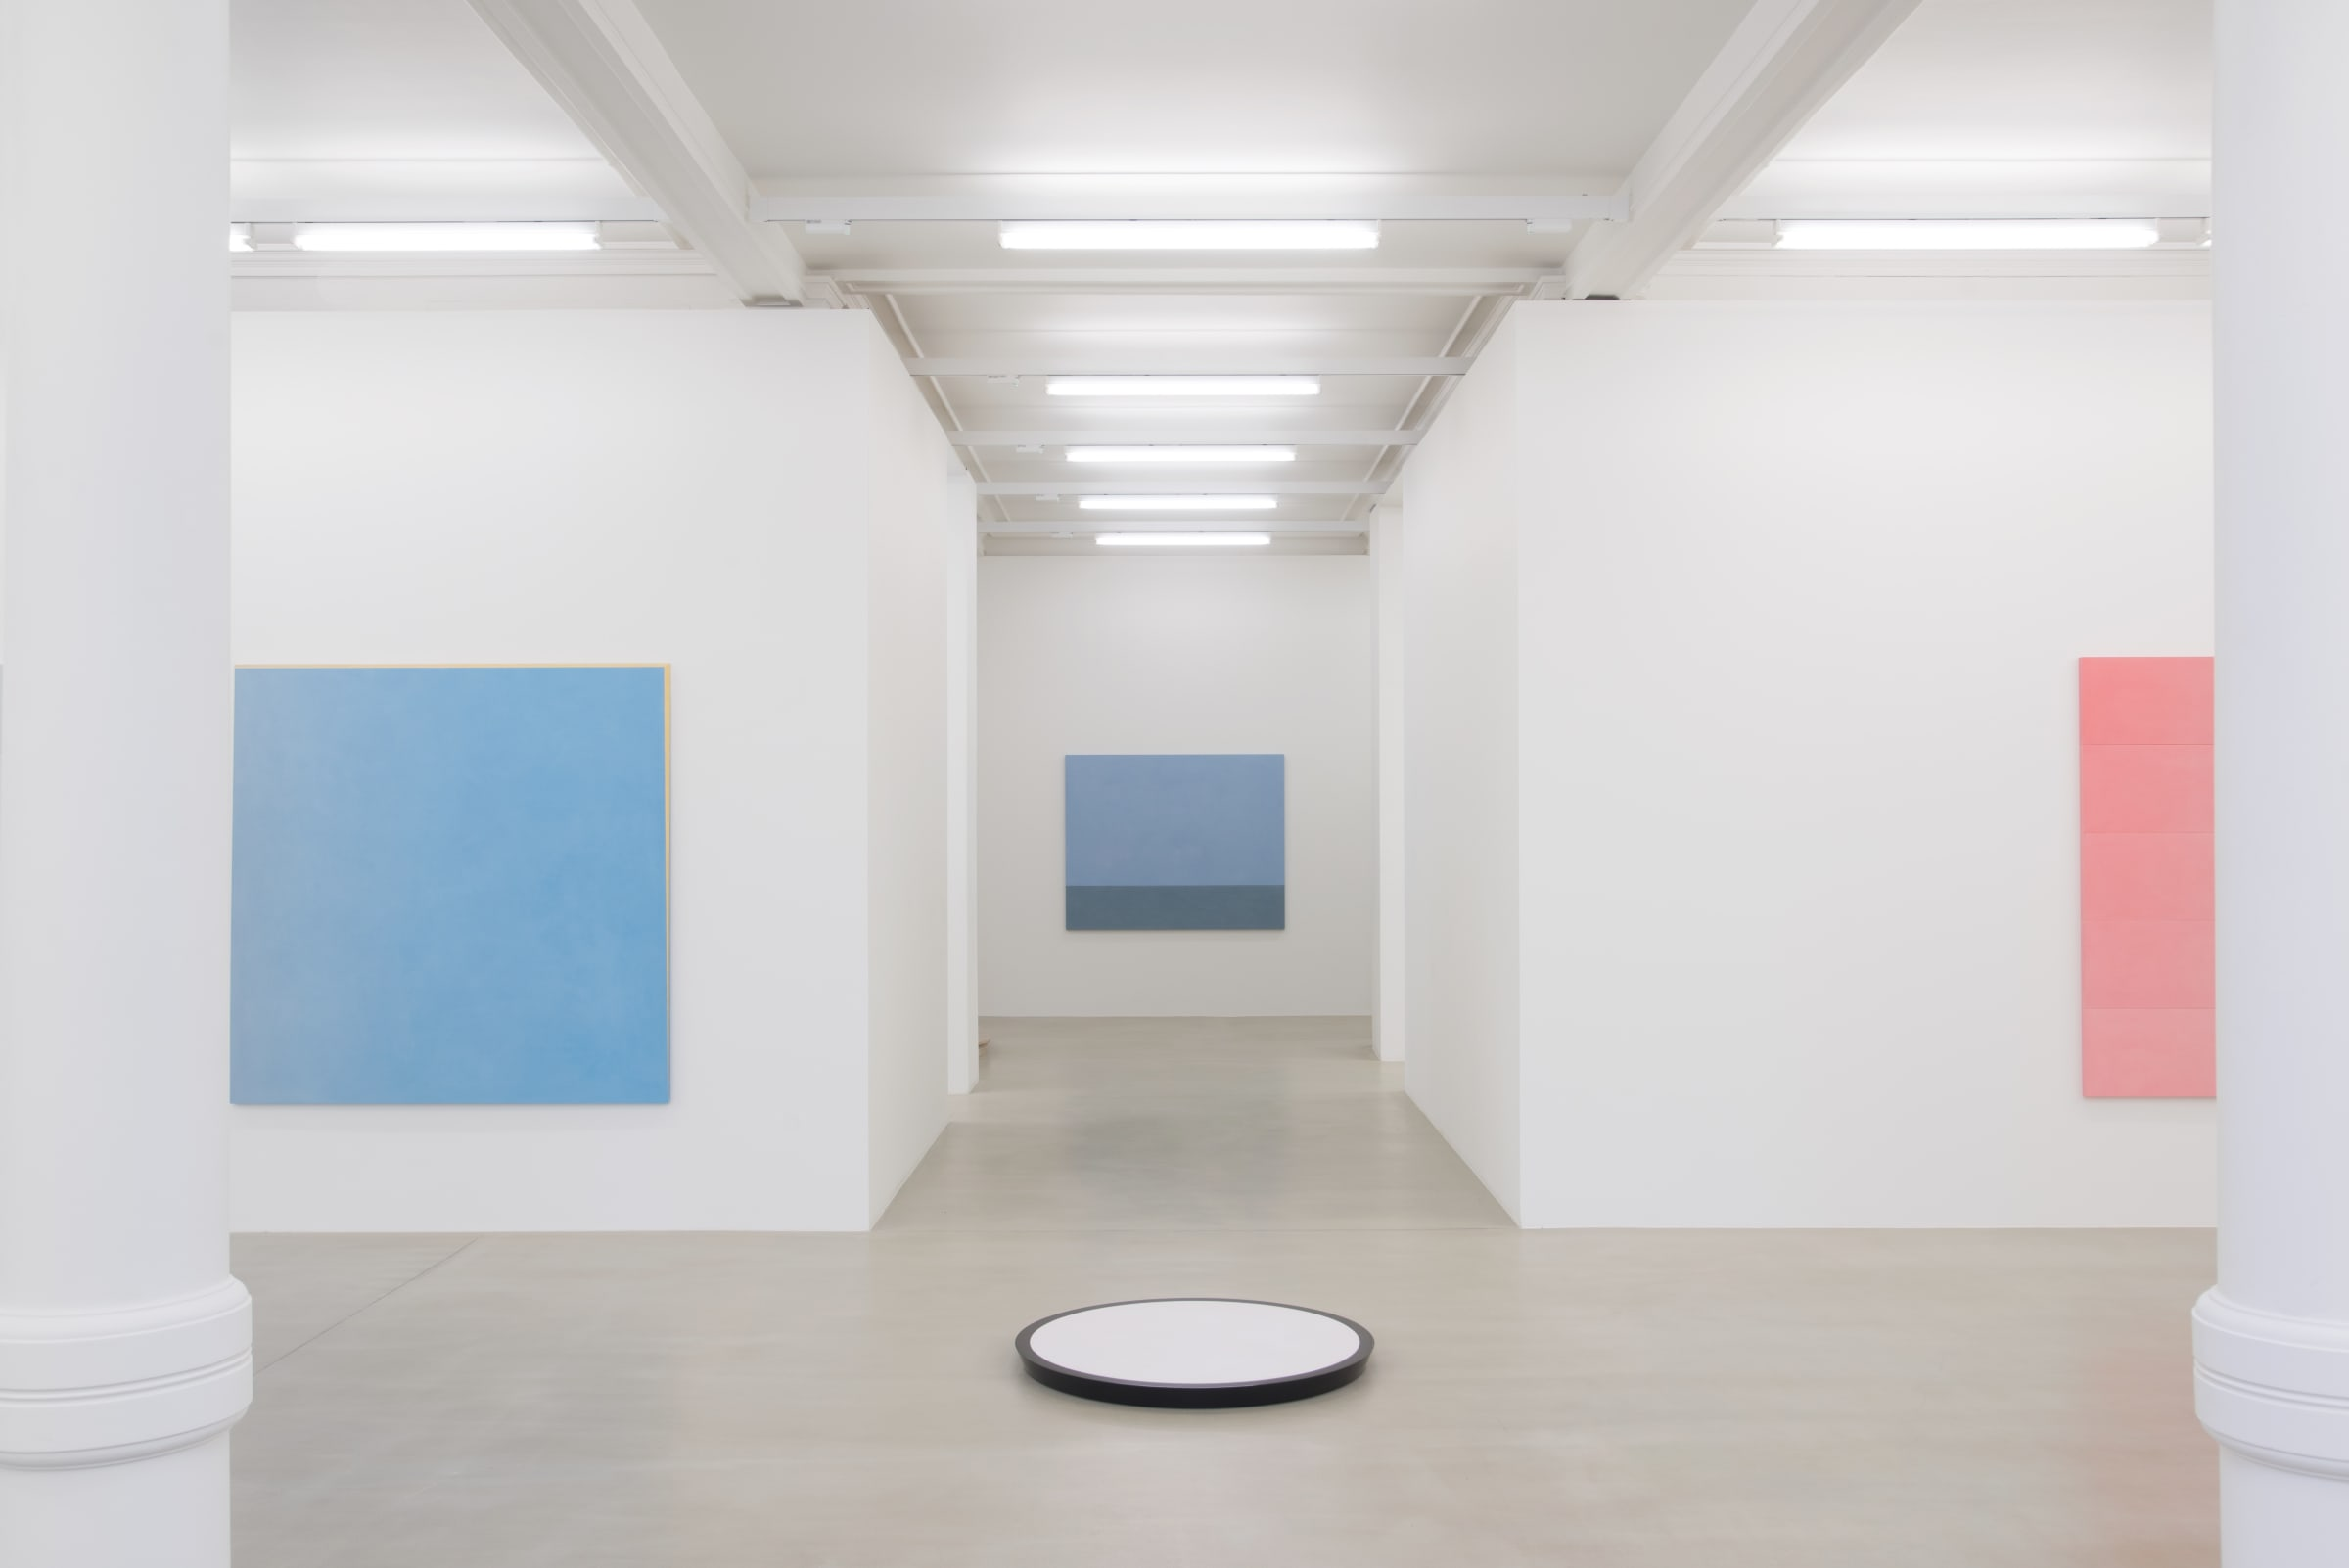 2 paintings hang on either side of a hallway, one pink and one blue. There is a blue painting at the end of the hall and a white circular object in the center.